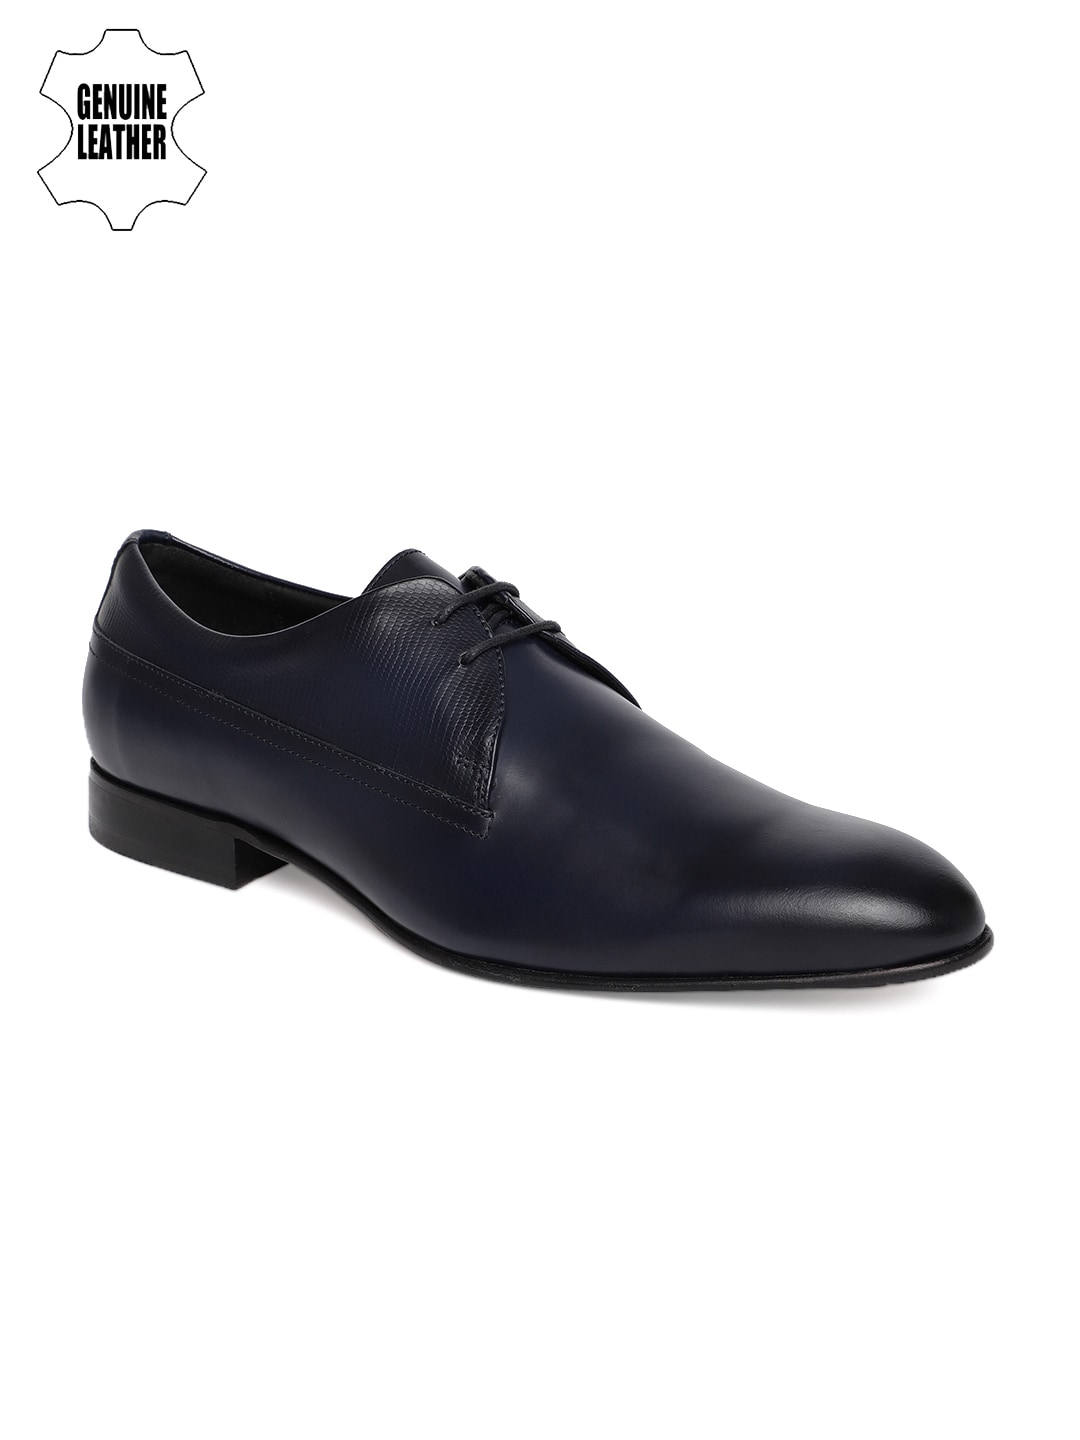 b06976fb5dbc4b Derby Shoes - Buy Derby Shoes online in India